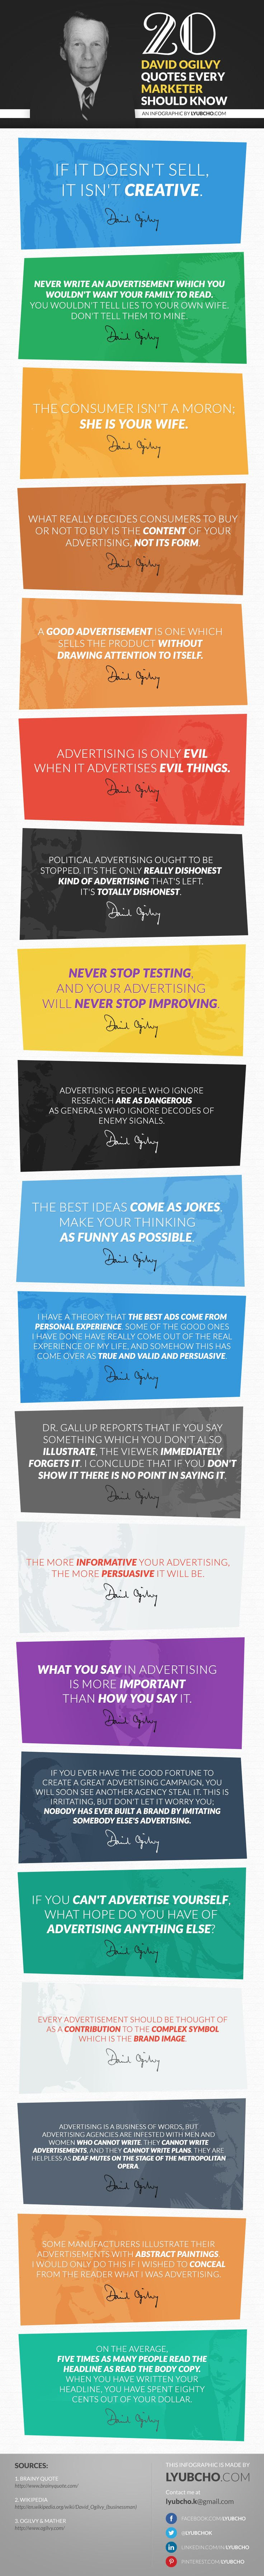 20 David Ogilvy Quotes Every Digital Marketer Should Know - #infographic